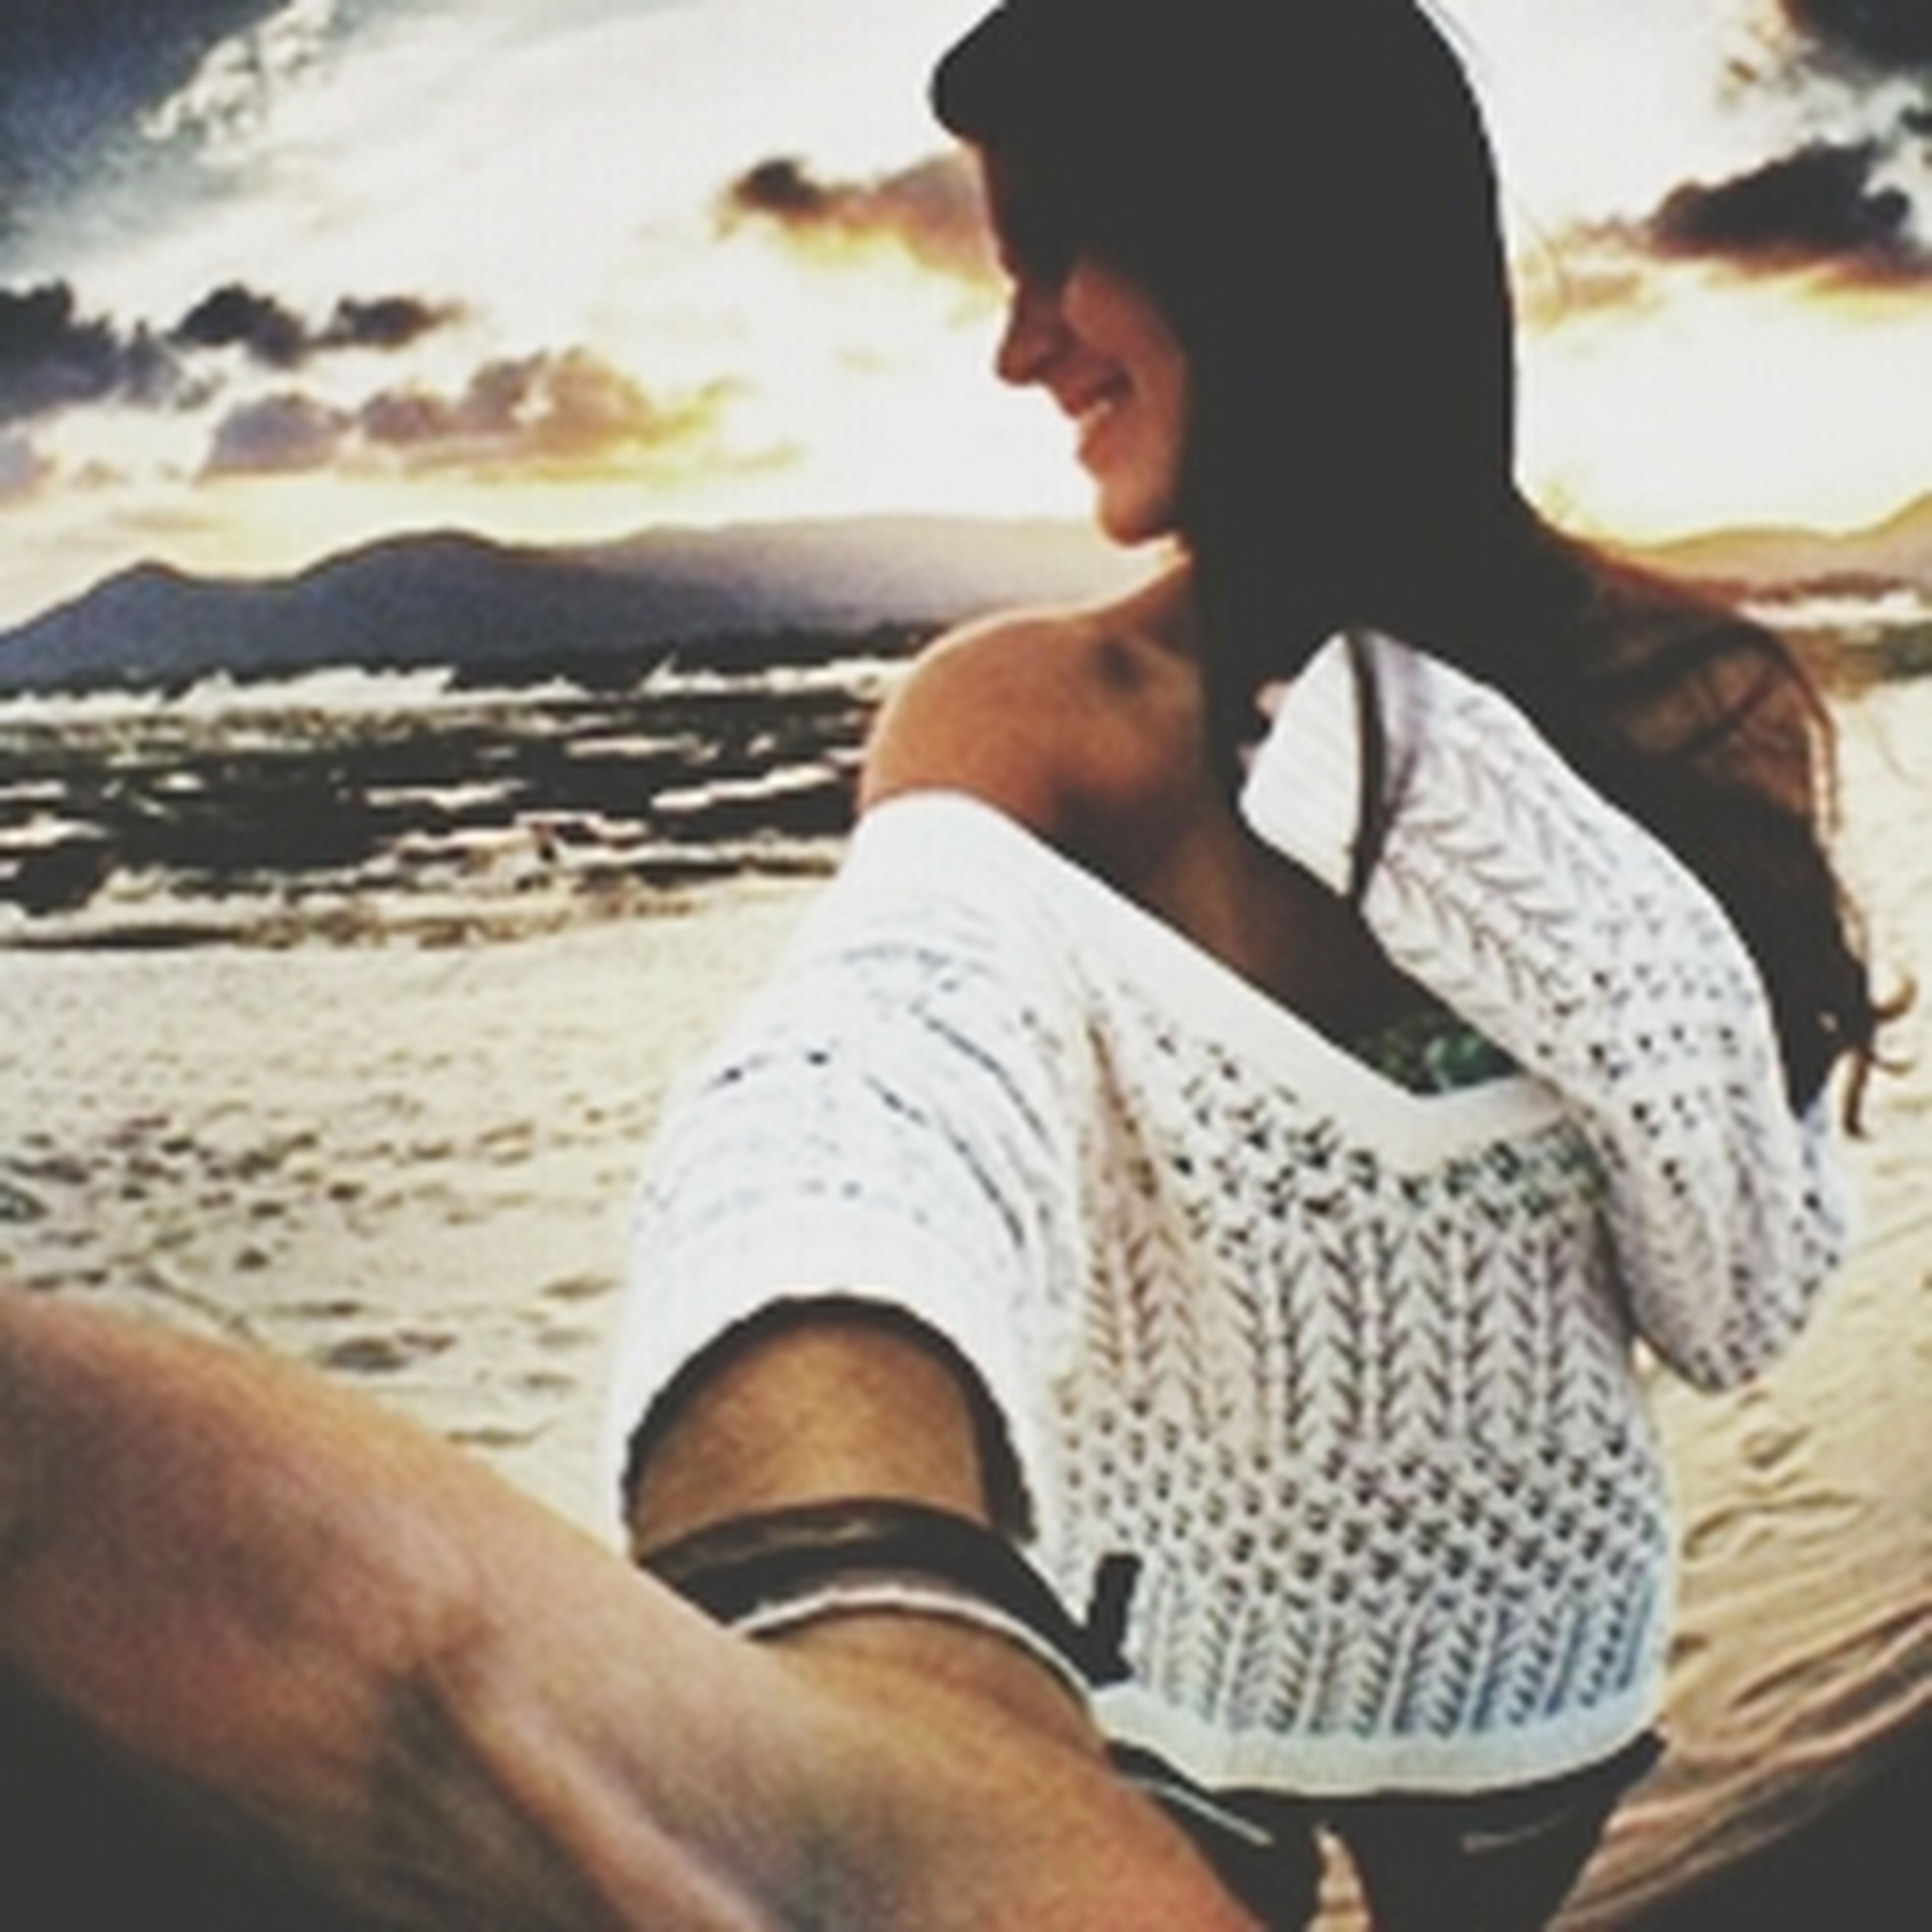 lifestyles, leisure activity, sunset, sky, beach, men, vacations, focus on foreground, relaxation, standing, casual clothing, sea, sitting, person, sunlight, young adult, outdoors, nature